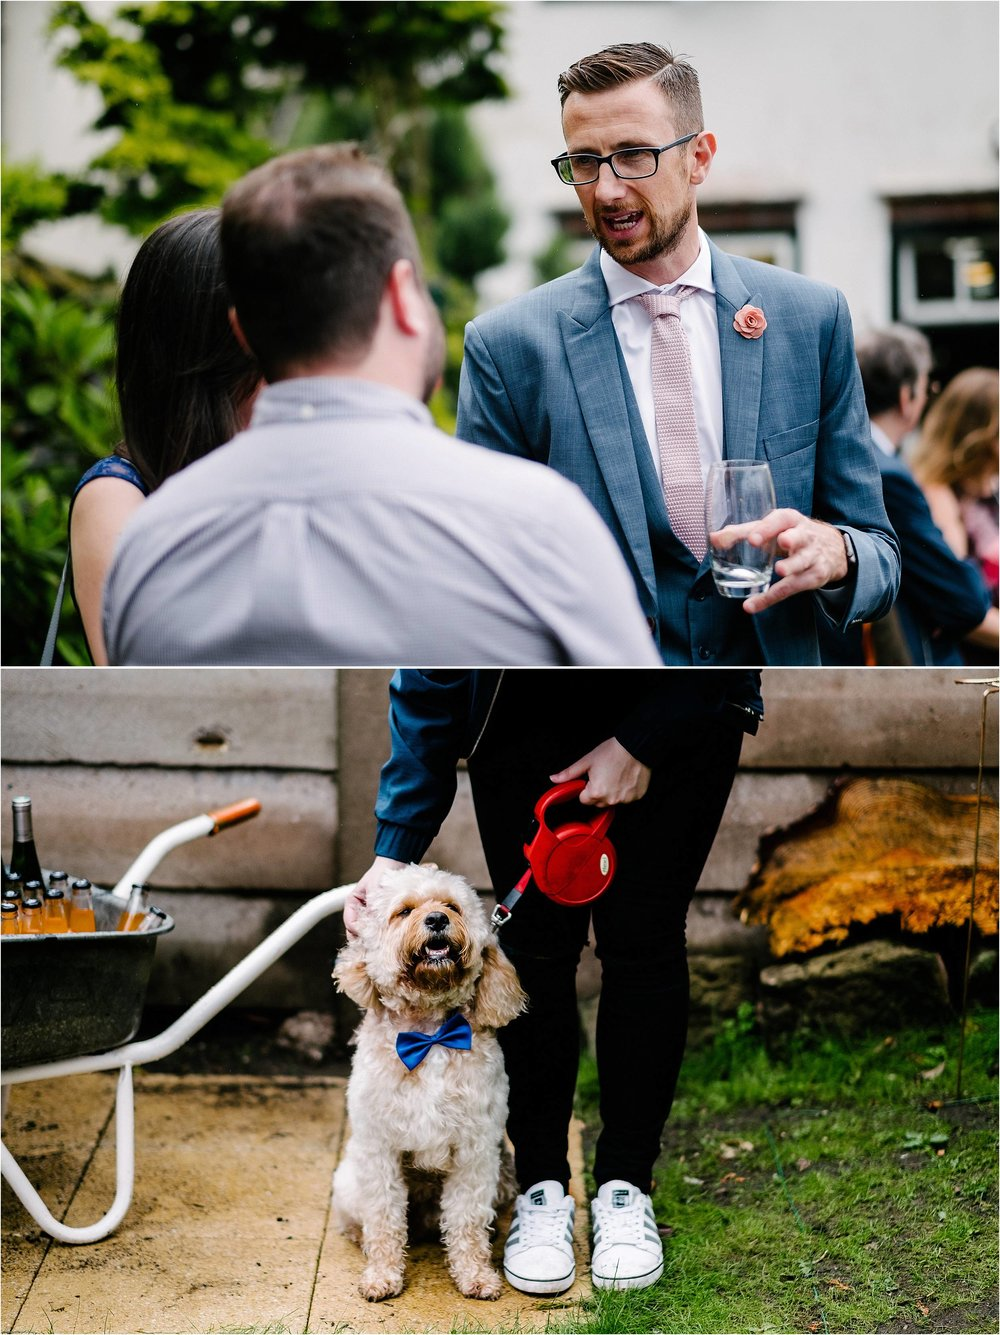 At home back garden wedding photographer_0020.jpg